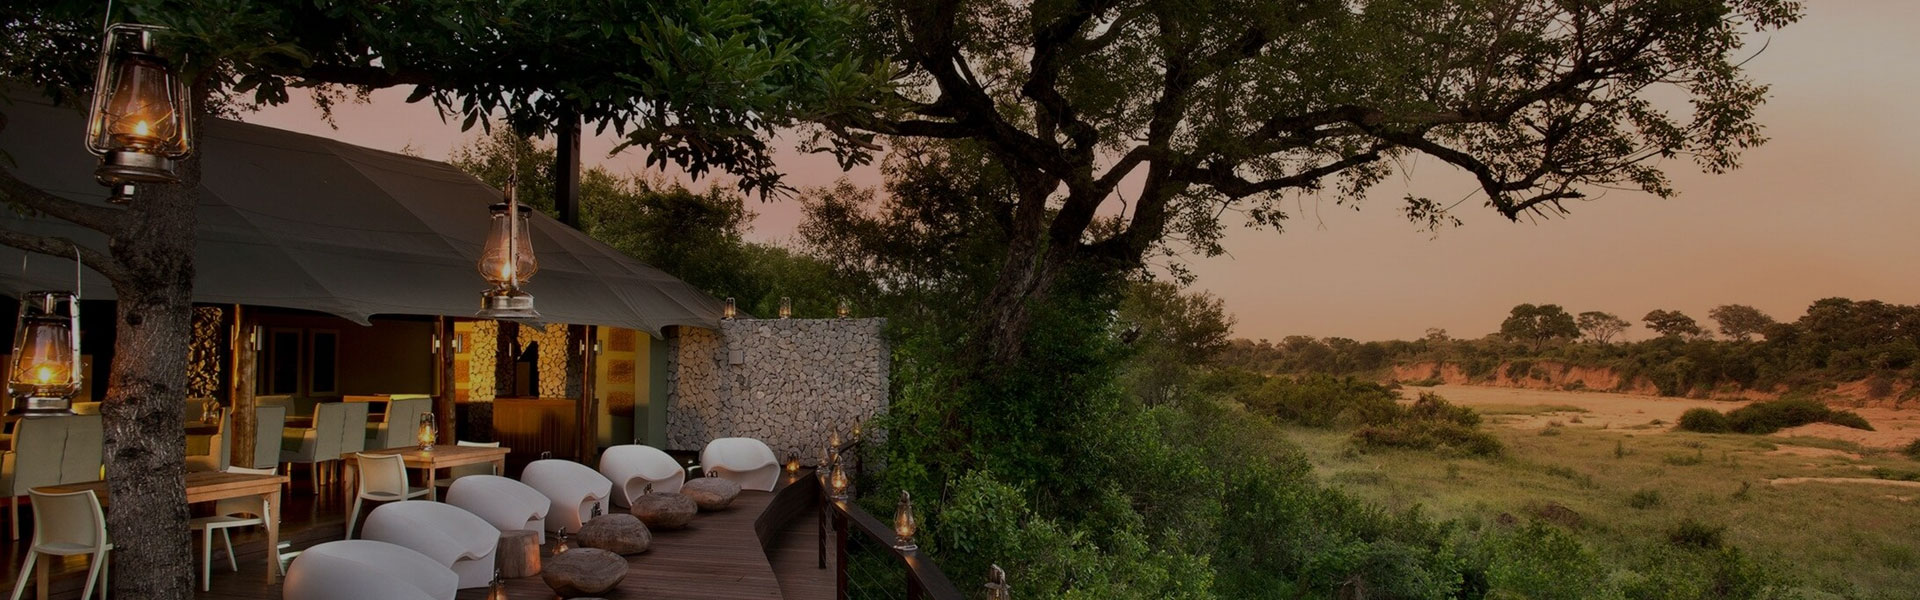 4 Days Tanzania Luxury Bush Safari